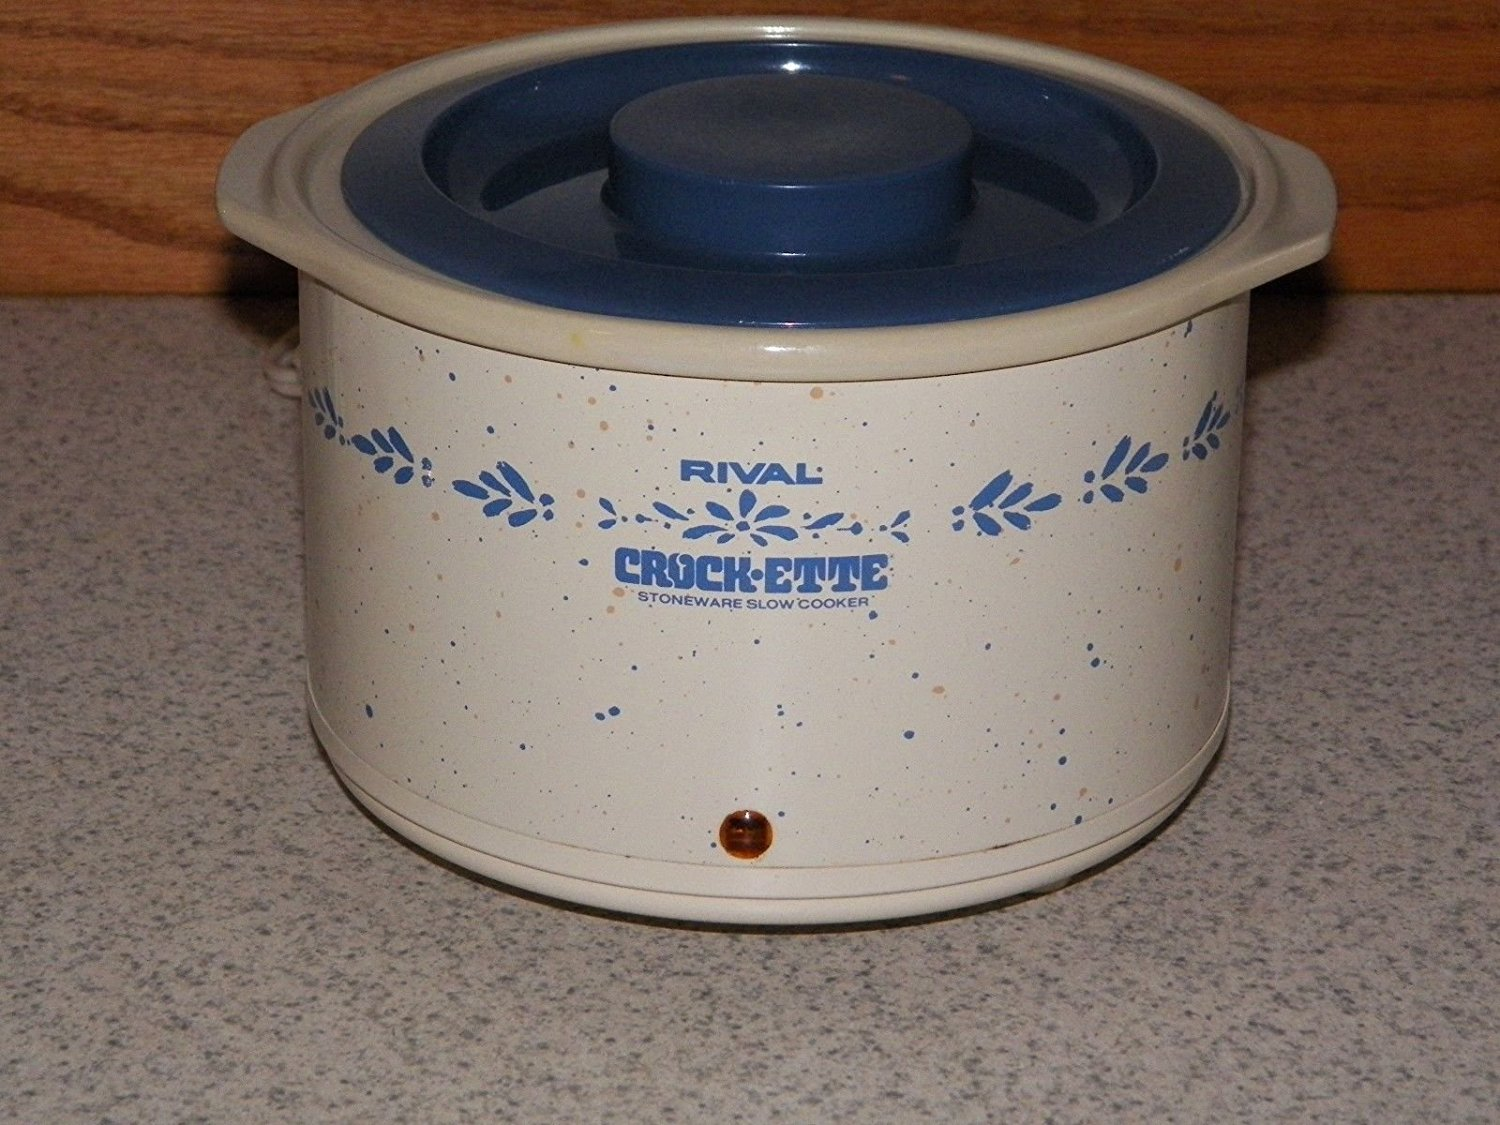 Rival Crock-ette 1 Quart Slow Cooker